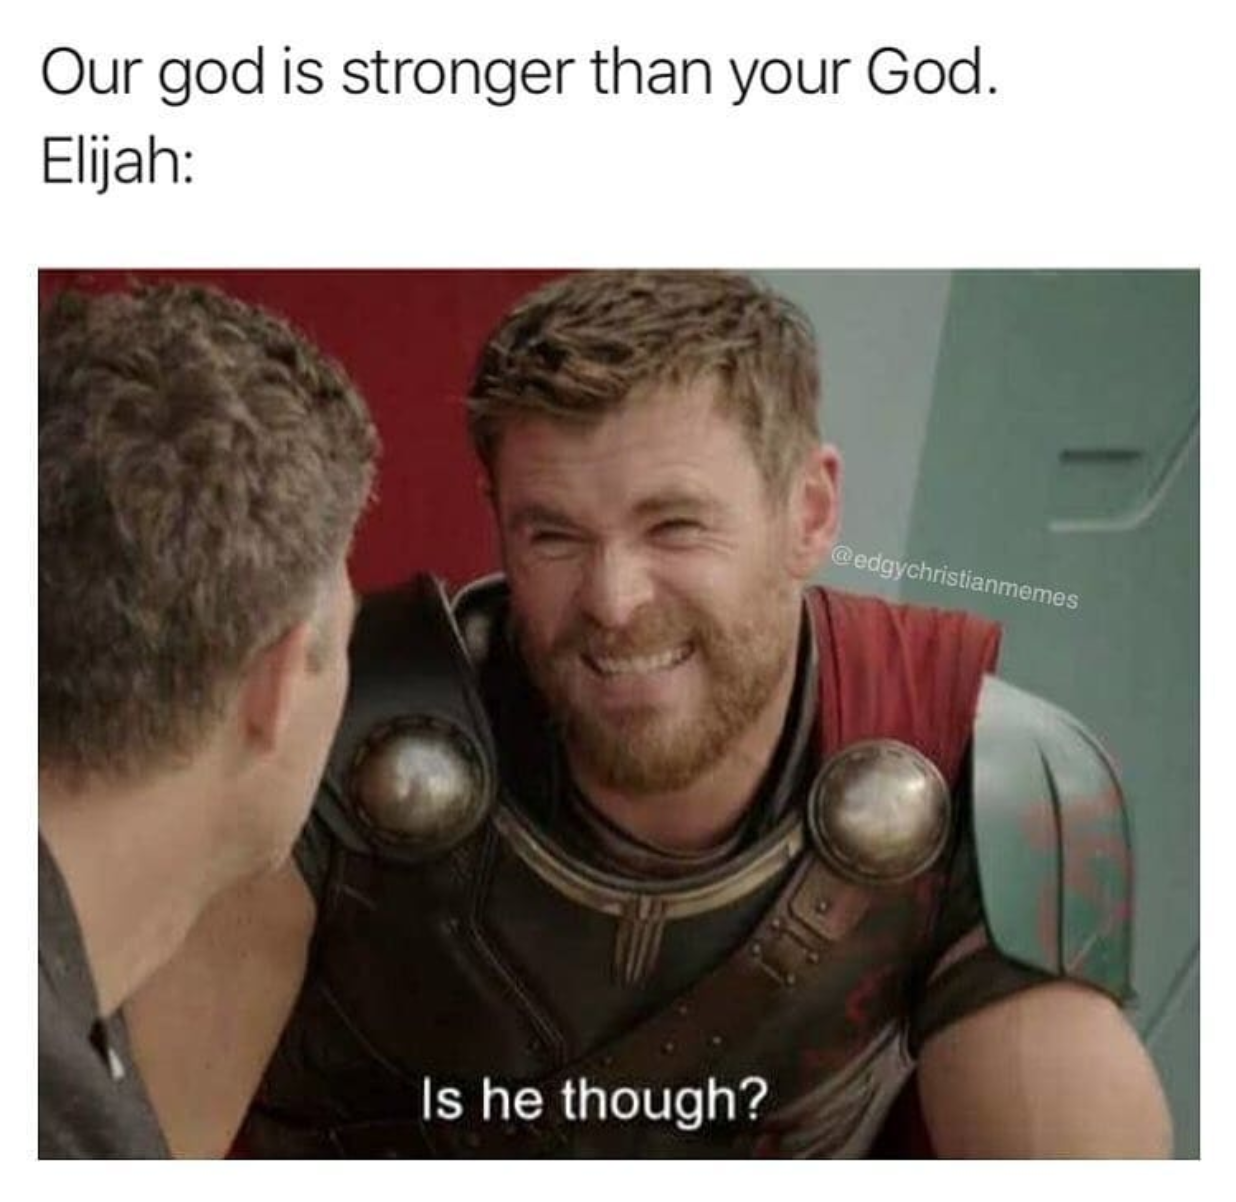 10 More Christian Memes That Gave Us A Good Laugh This Week Project Inspired Funny Christian Memes Christian Memes Church Memes